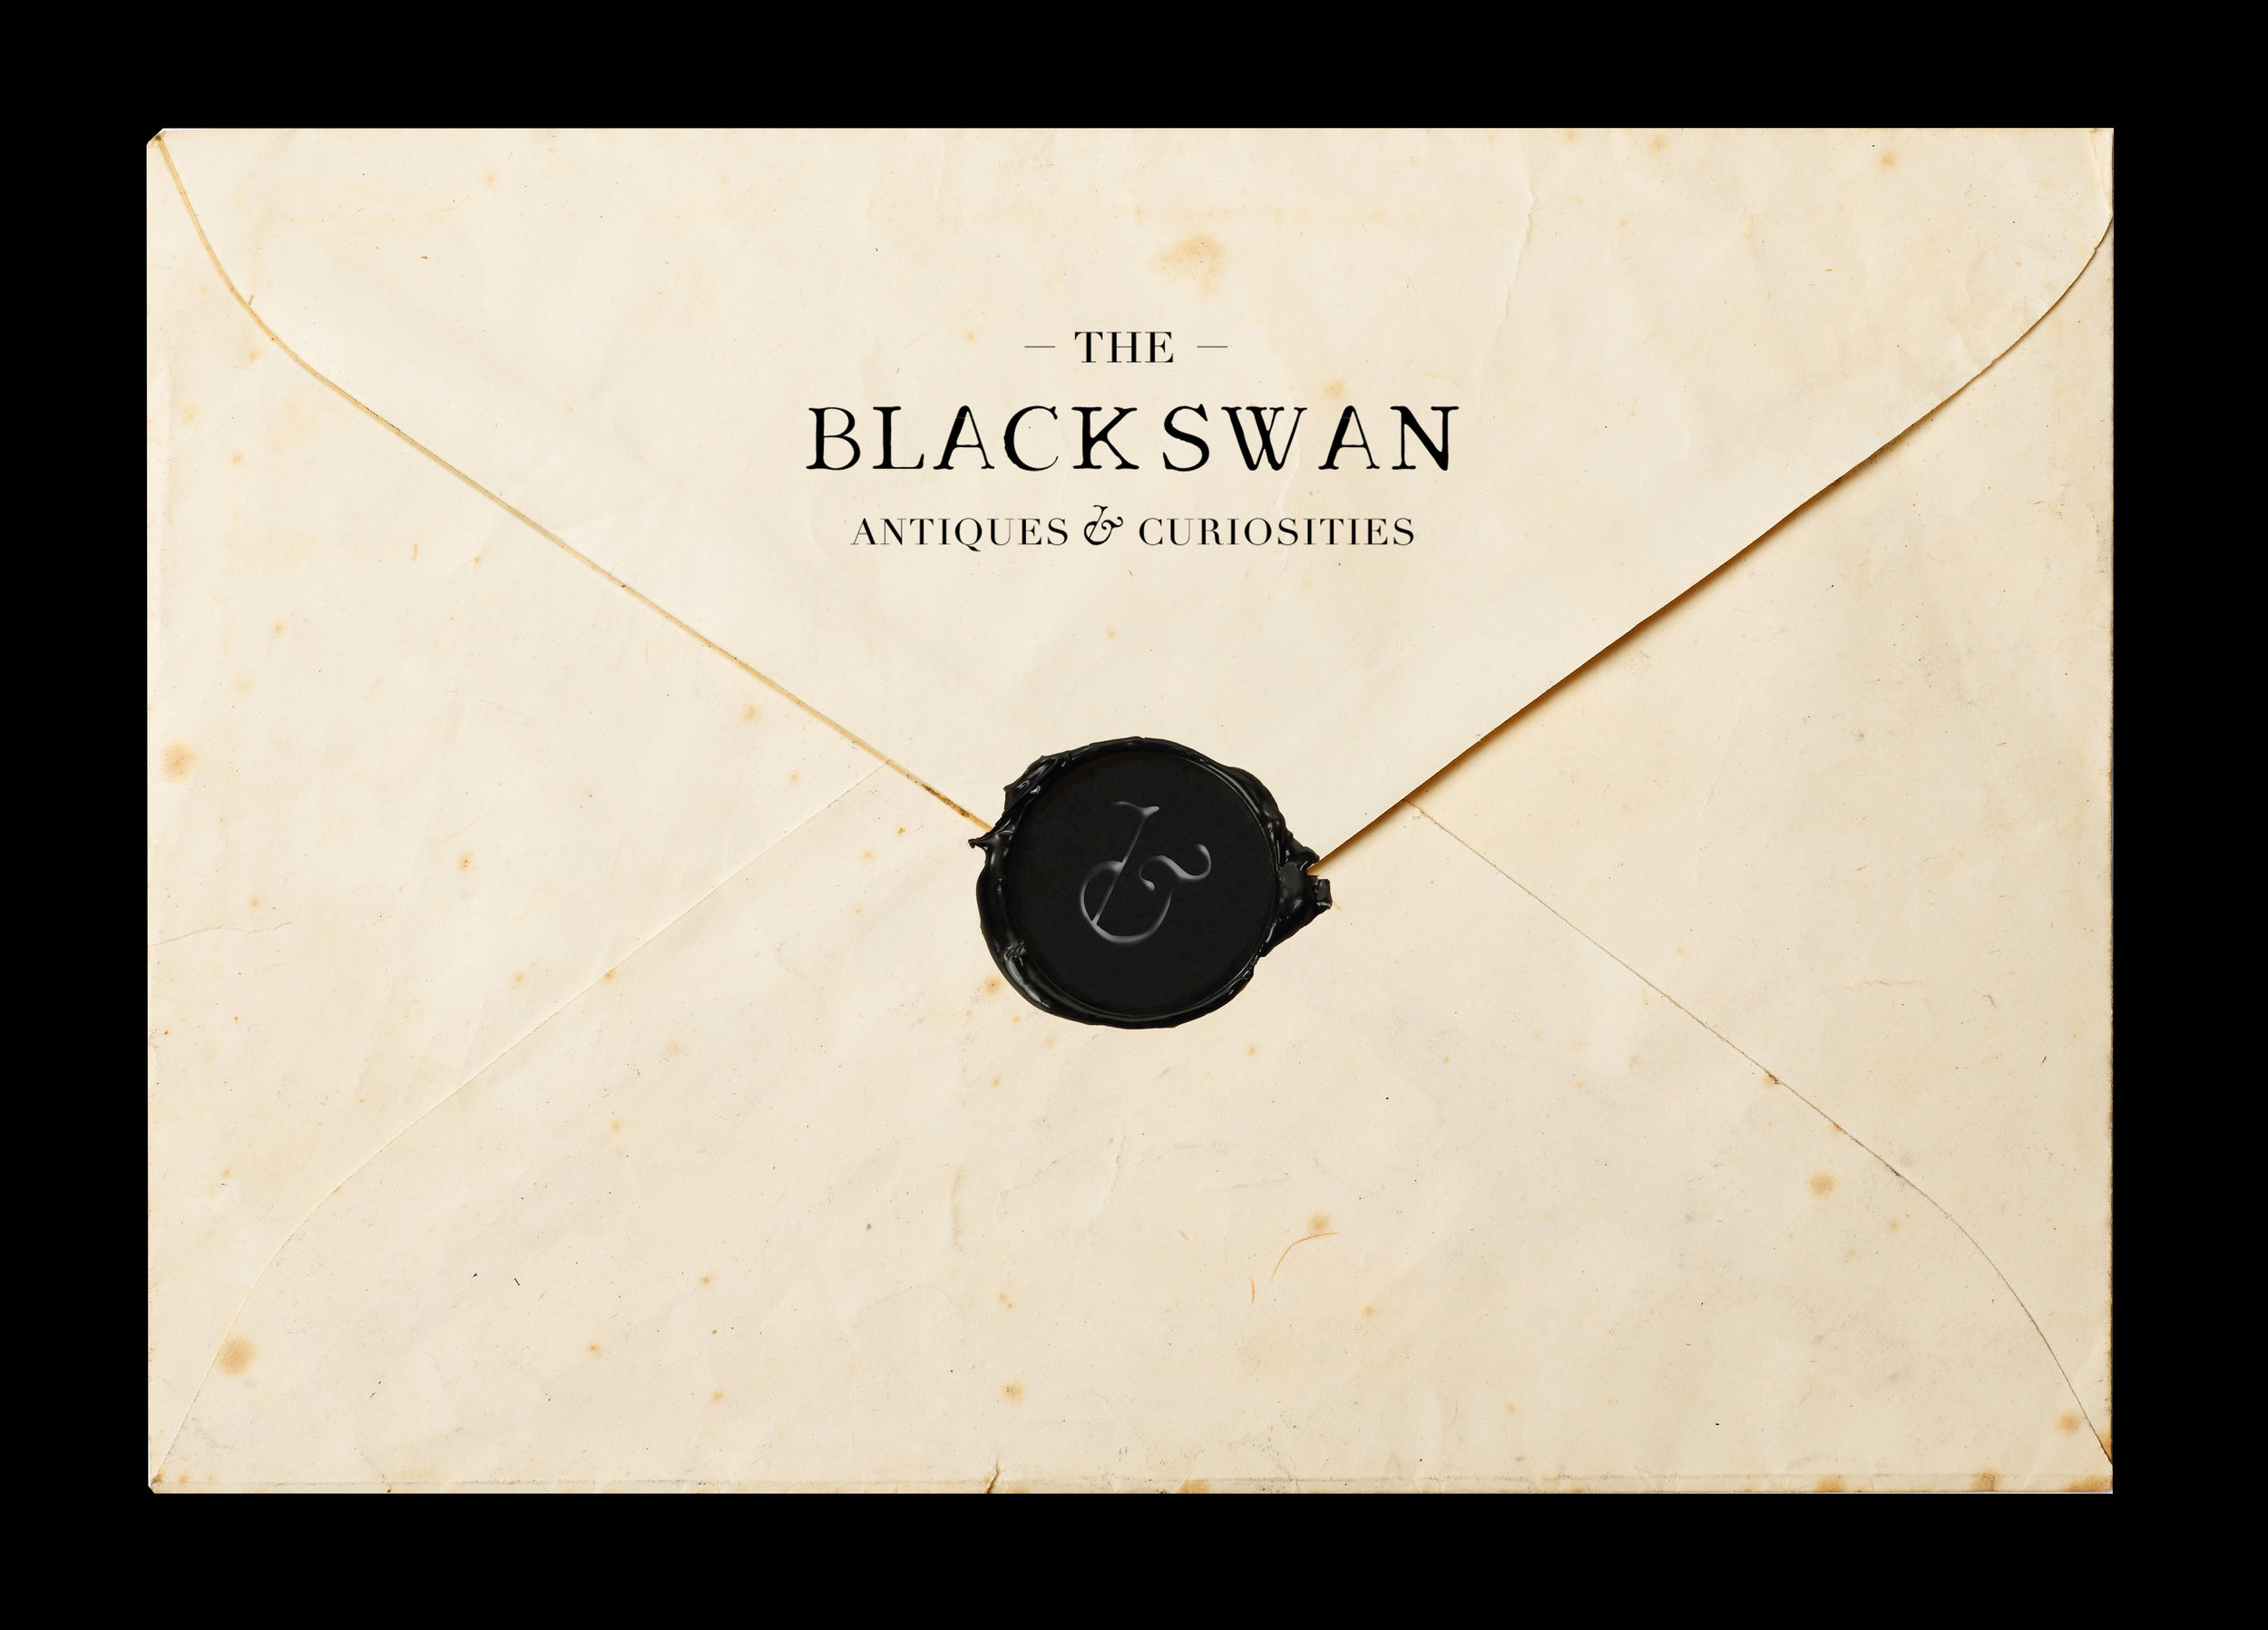 Black_Swan_Envelope.jpg